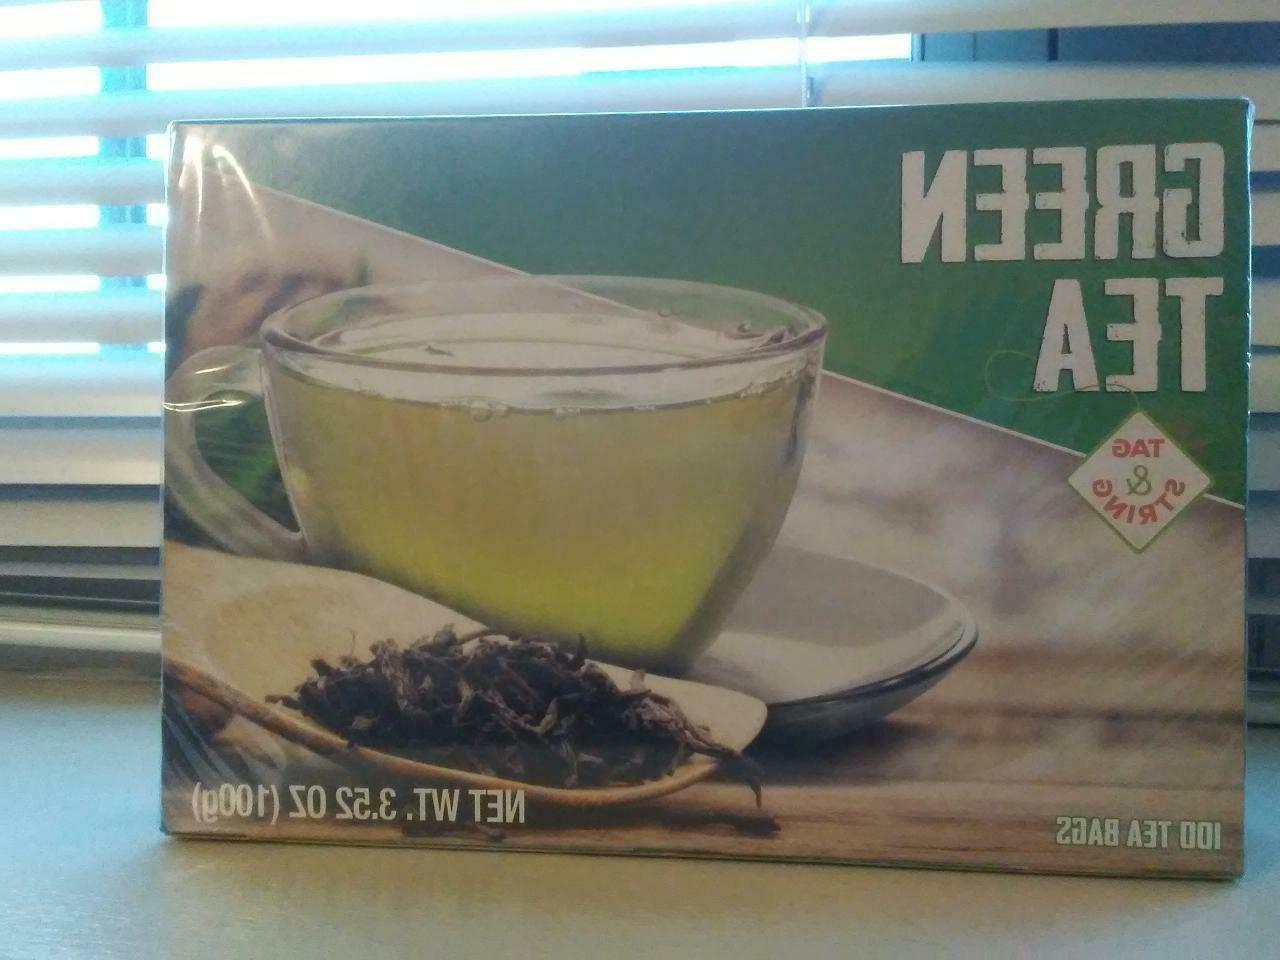 antioxidant green tea single large box of